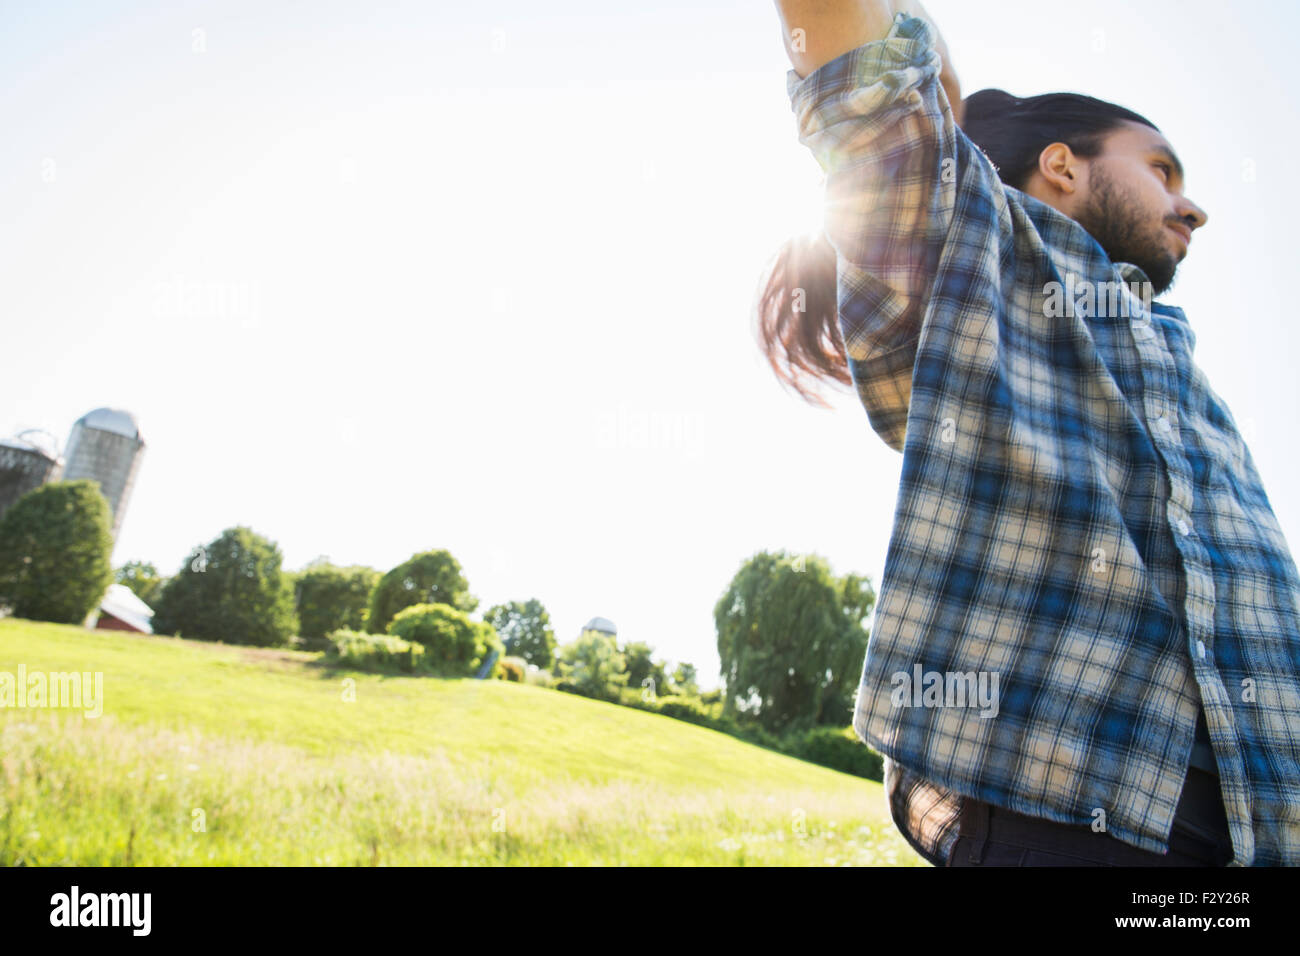 A young man letting down his very long dark hair. - Stock Image